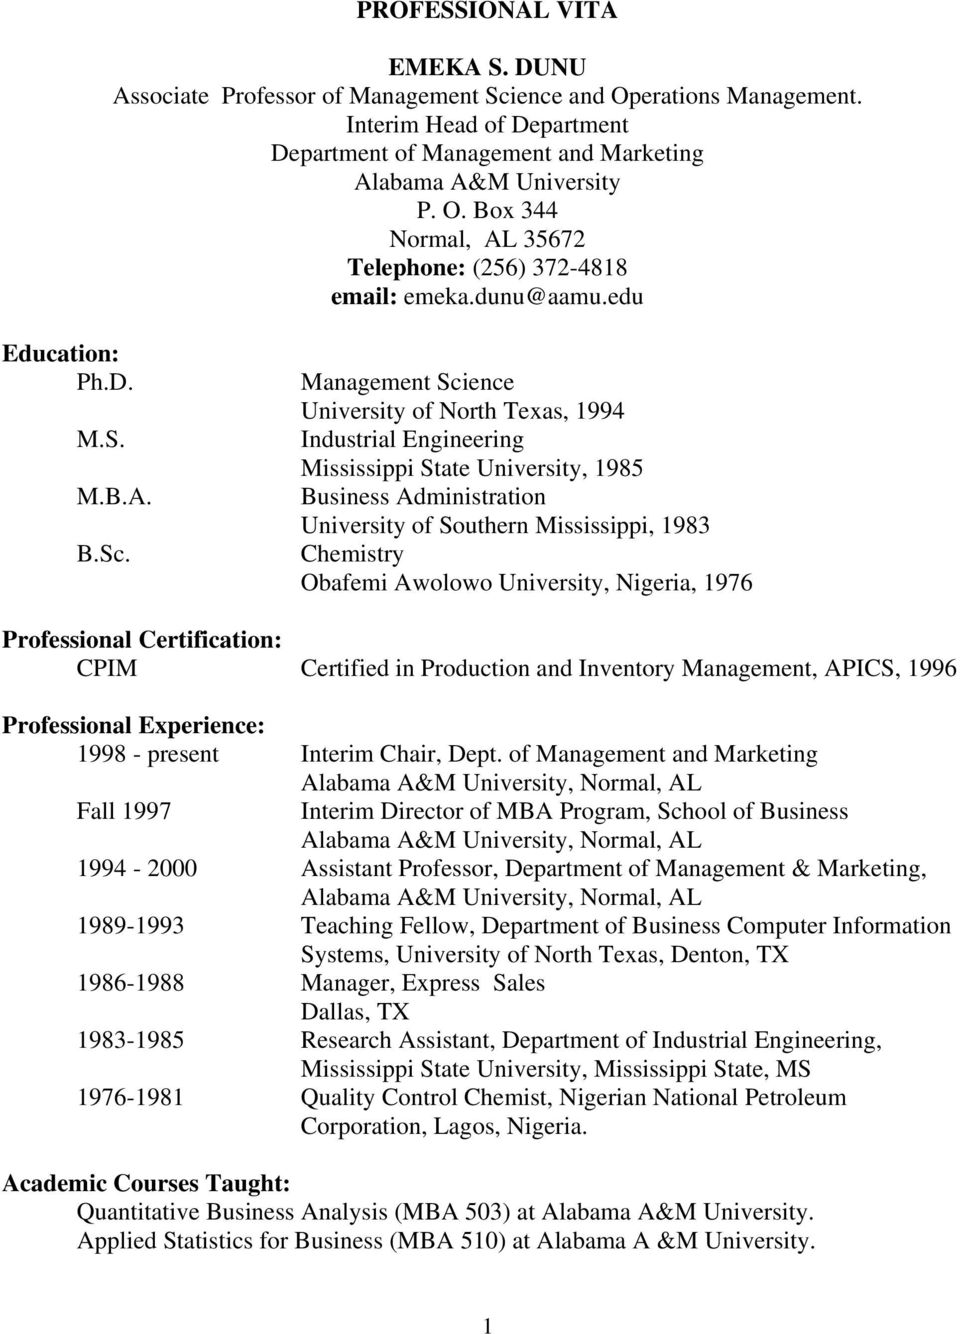 Management Science University of North Texas, 1994 Industrial Engineering Mississippi State University, 1985 Business Administration University of Southern Mississippi, 1983 Chemistry Obafemi Awolowo